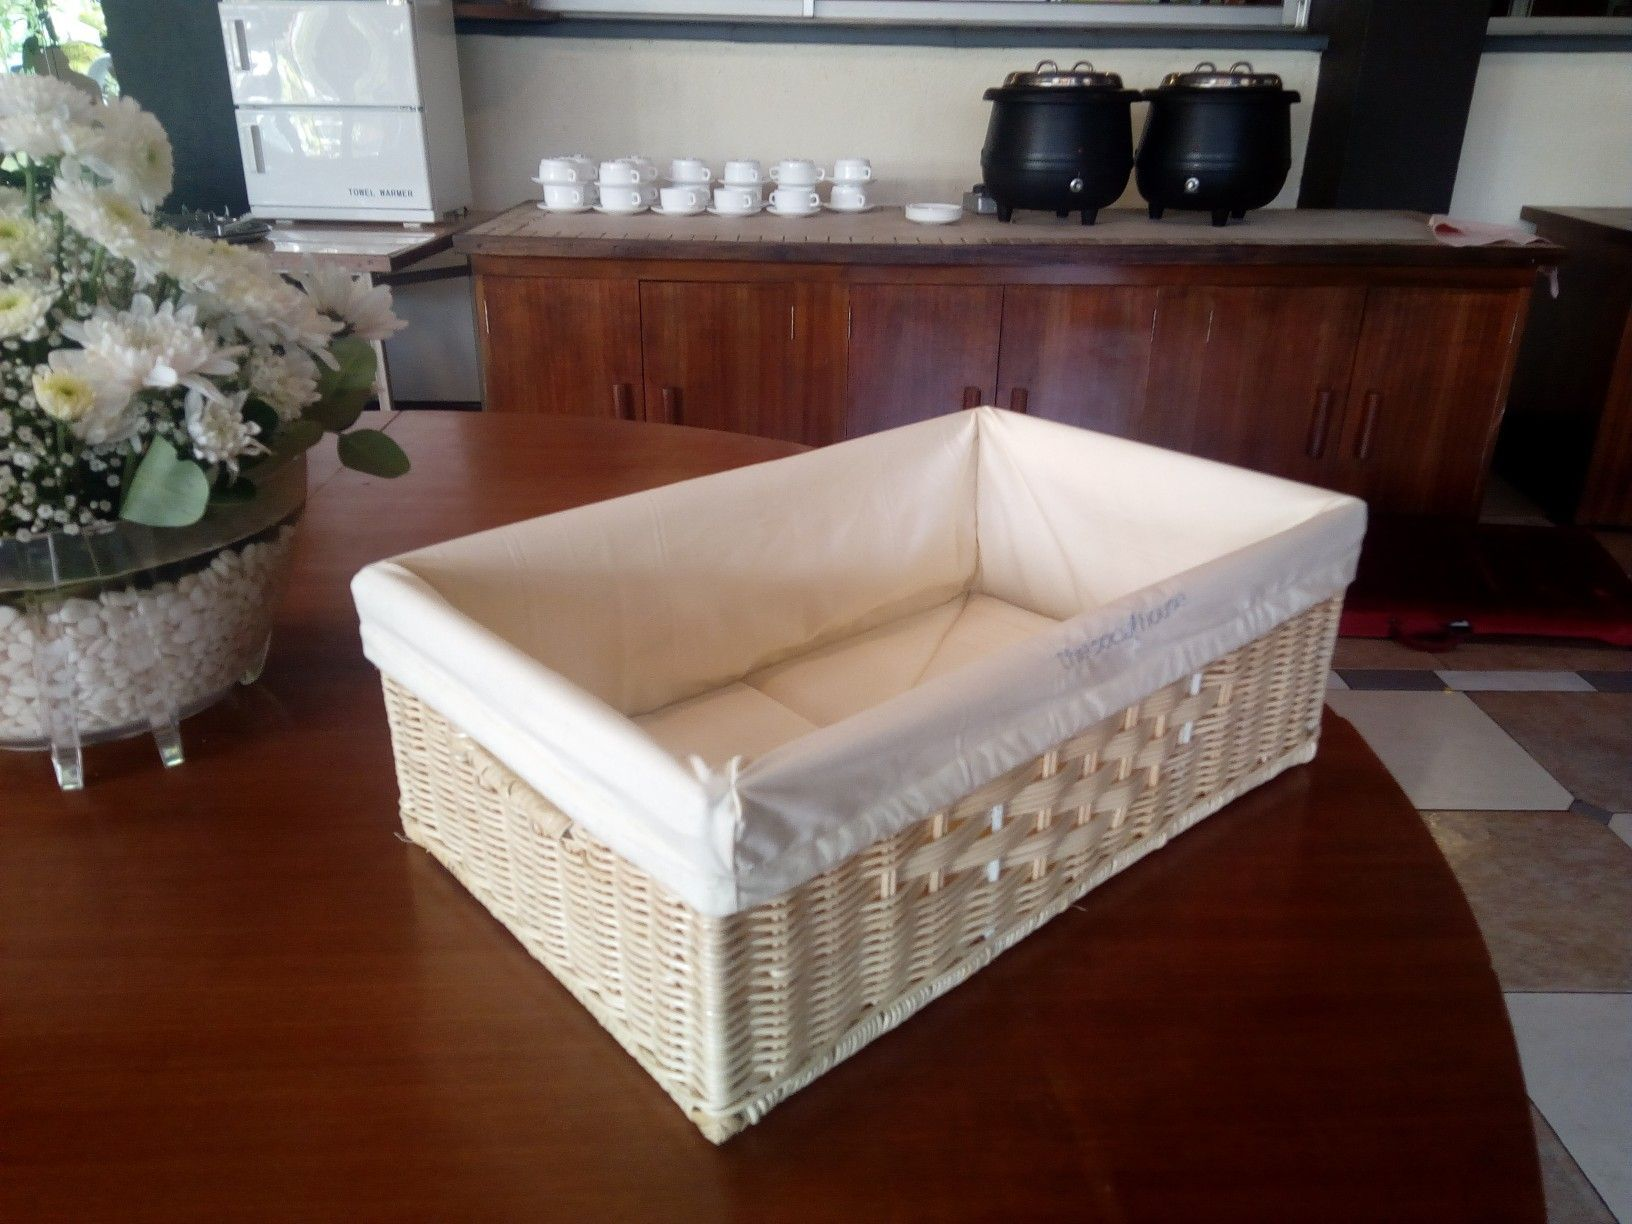 Rattan laundry guest basket with lining.. . @prilaga #pinterest #goodhousekeepingsa #hotelstay #pinterestfail #hotels #rattanbag #thatsgoodhousekeeping #pinteresthair #rattanbags #hangingbaskets #housekeeping #pinterestwin #easterbaskets #goodhousekeeping #prilaga #mypinterest #rattan #housekeepingweek #boutiquehotels #rattanbagbali #pinterestinspired #giftbaskets #hotelstyle #rattanfurniture #housekeepingservices #designhotels #baskets #basketshoes #hotelsandresorts #pinterestfail Rattan laundr #pinterestinspired